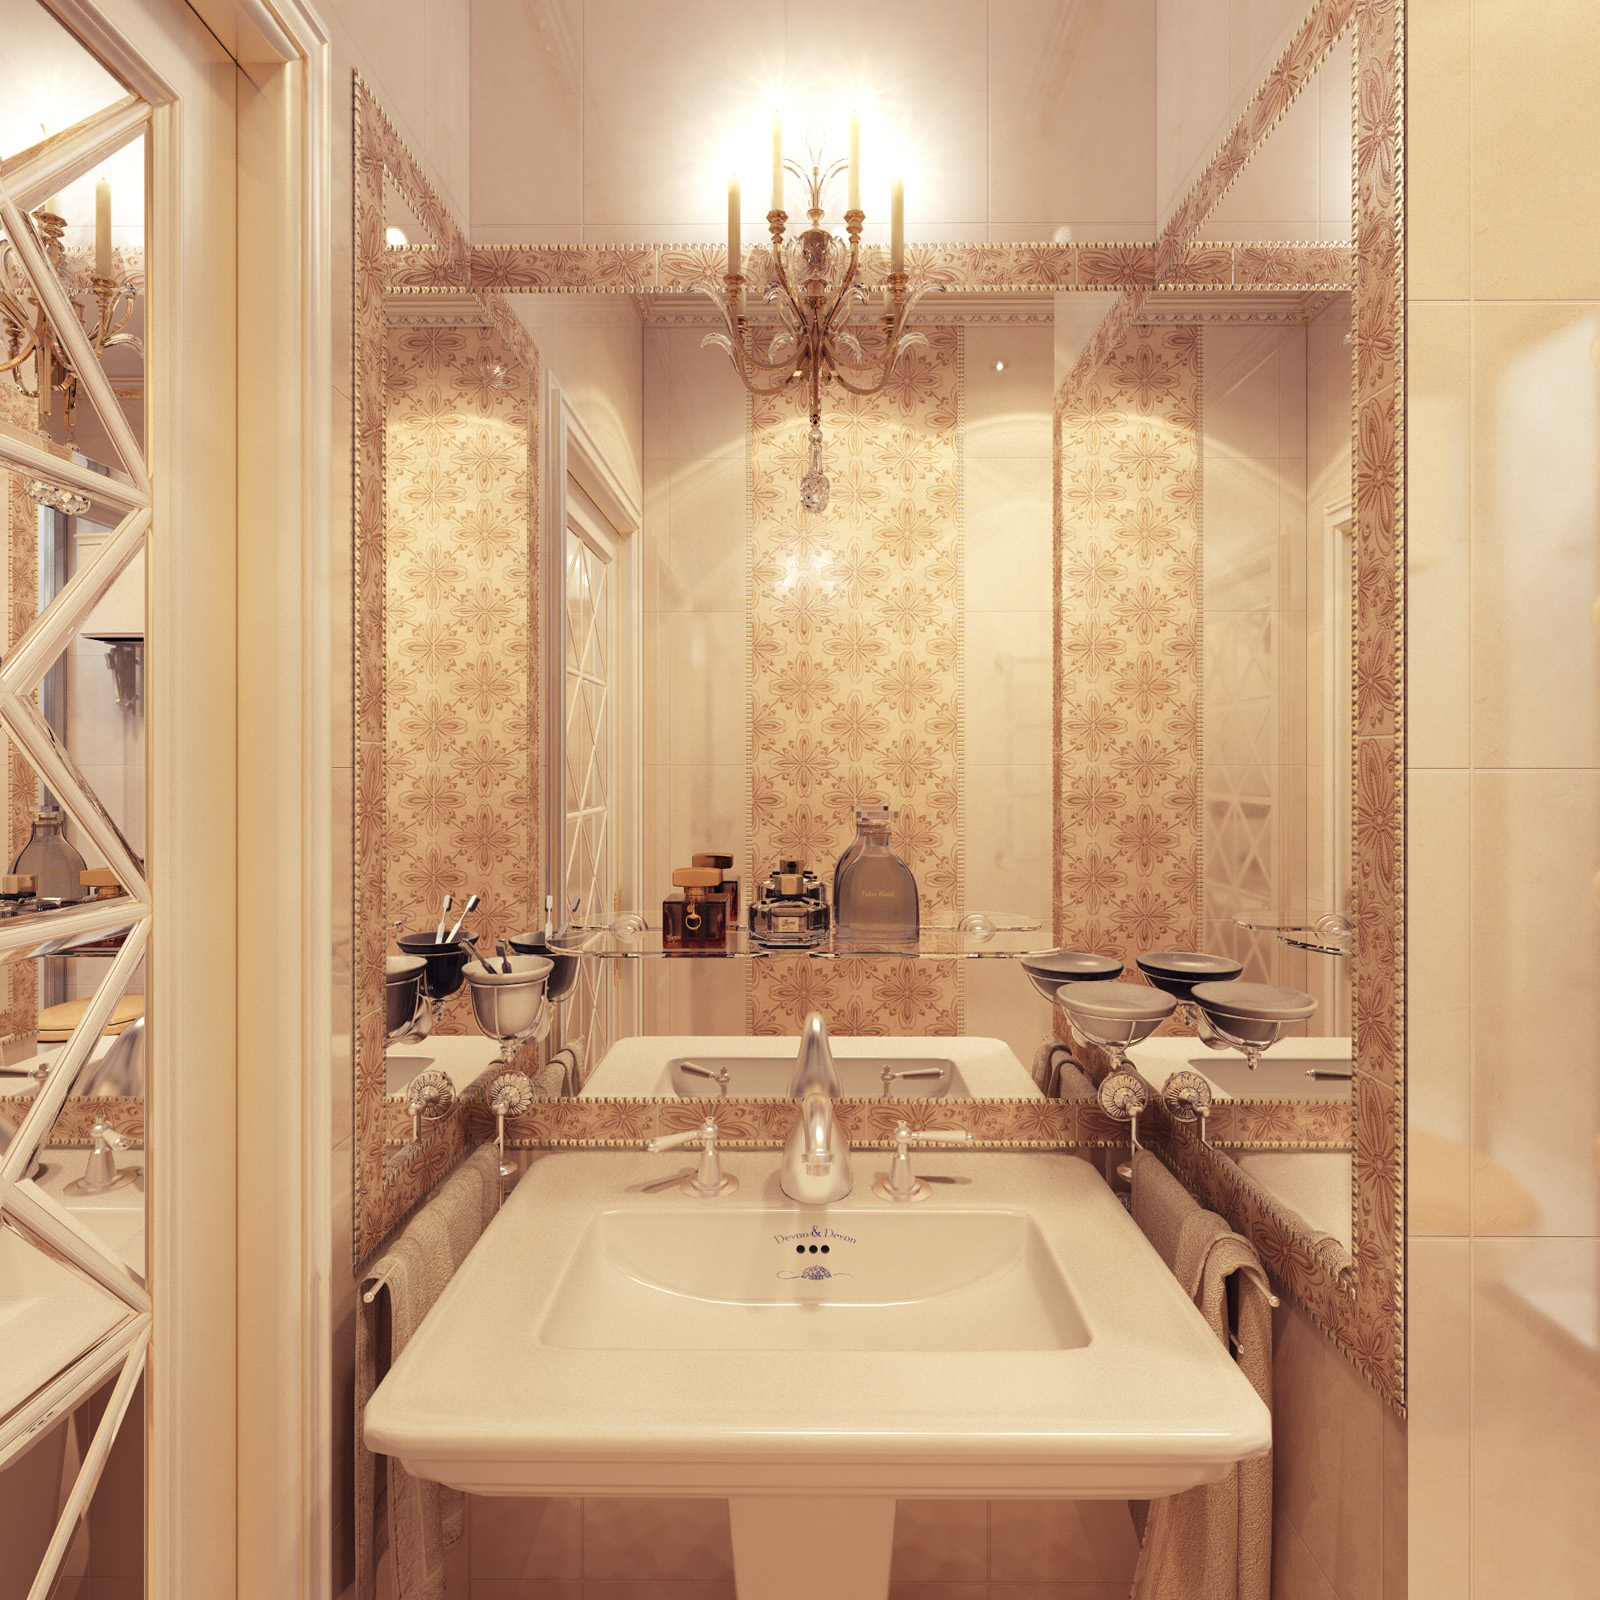 Bathroom designed to compliment your room